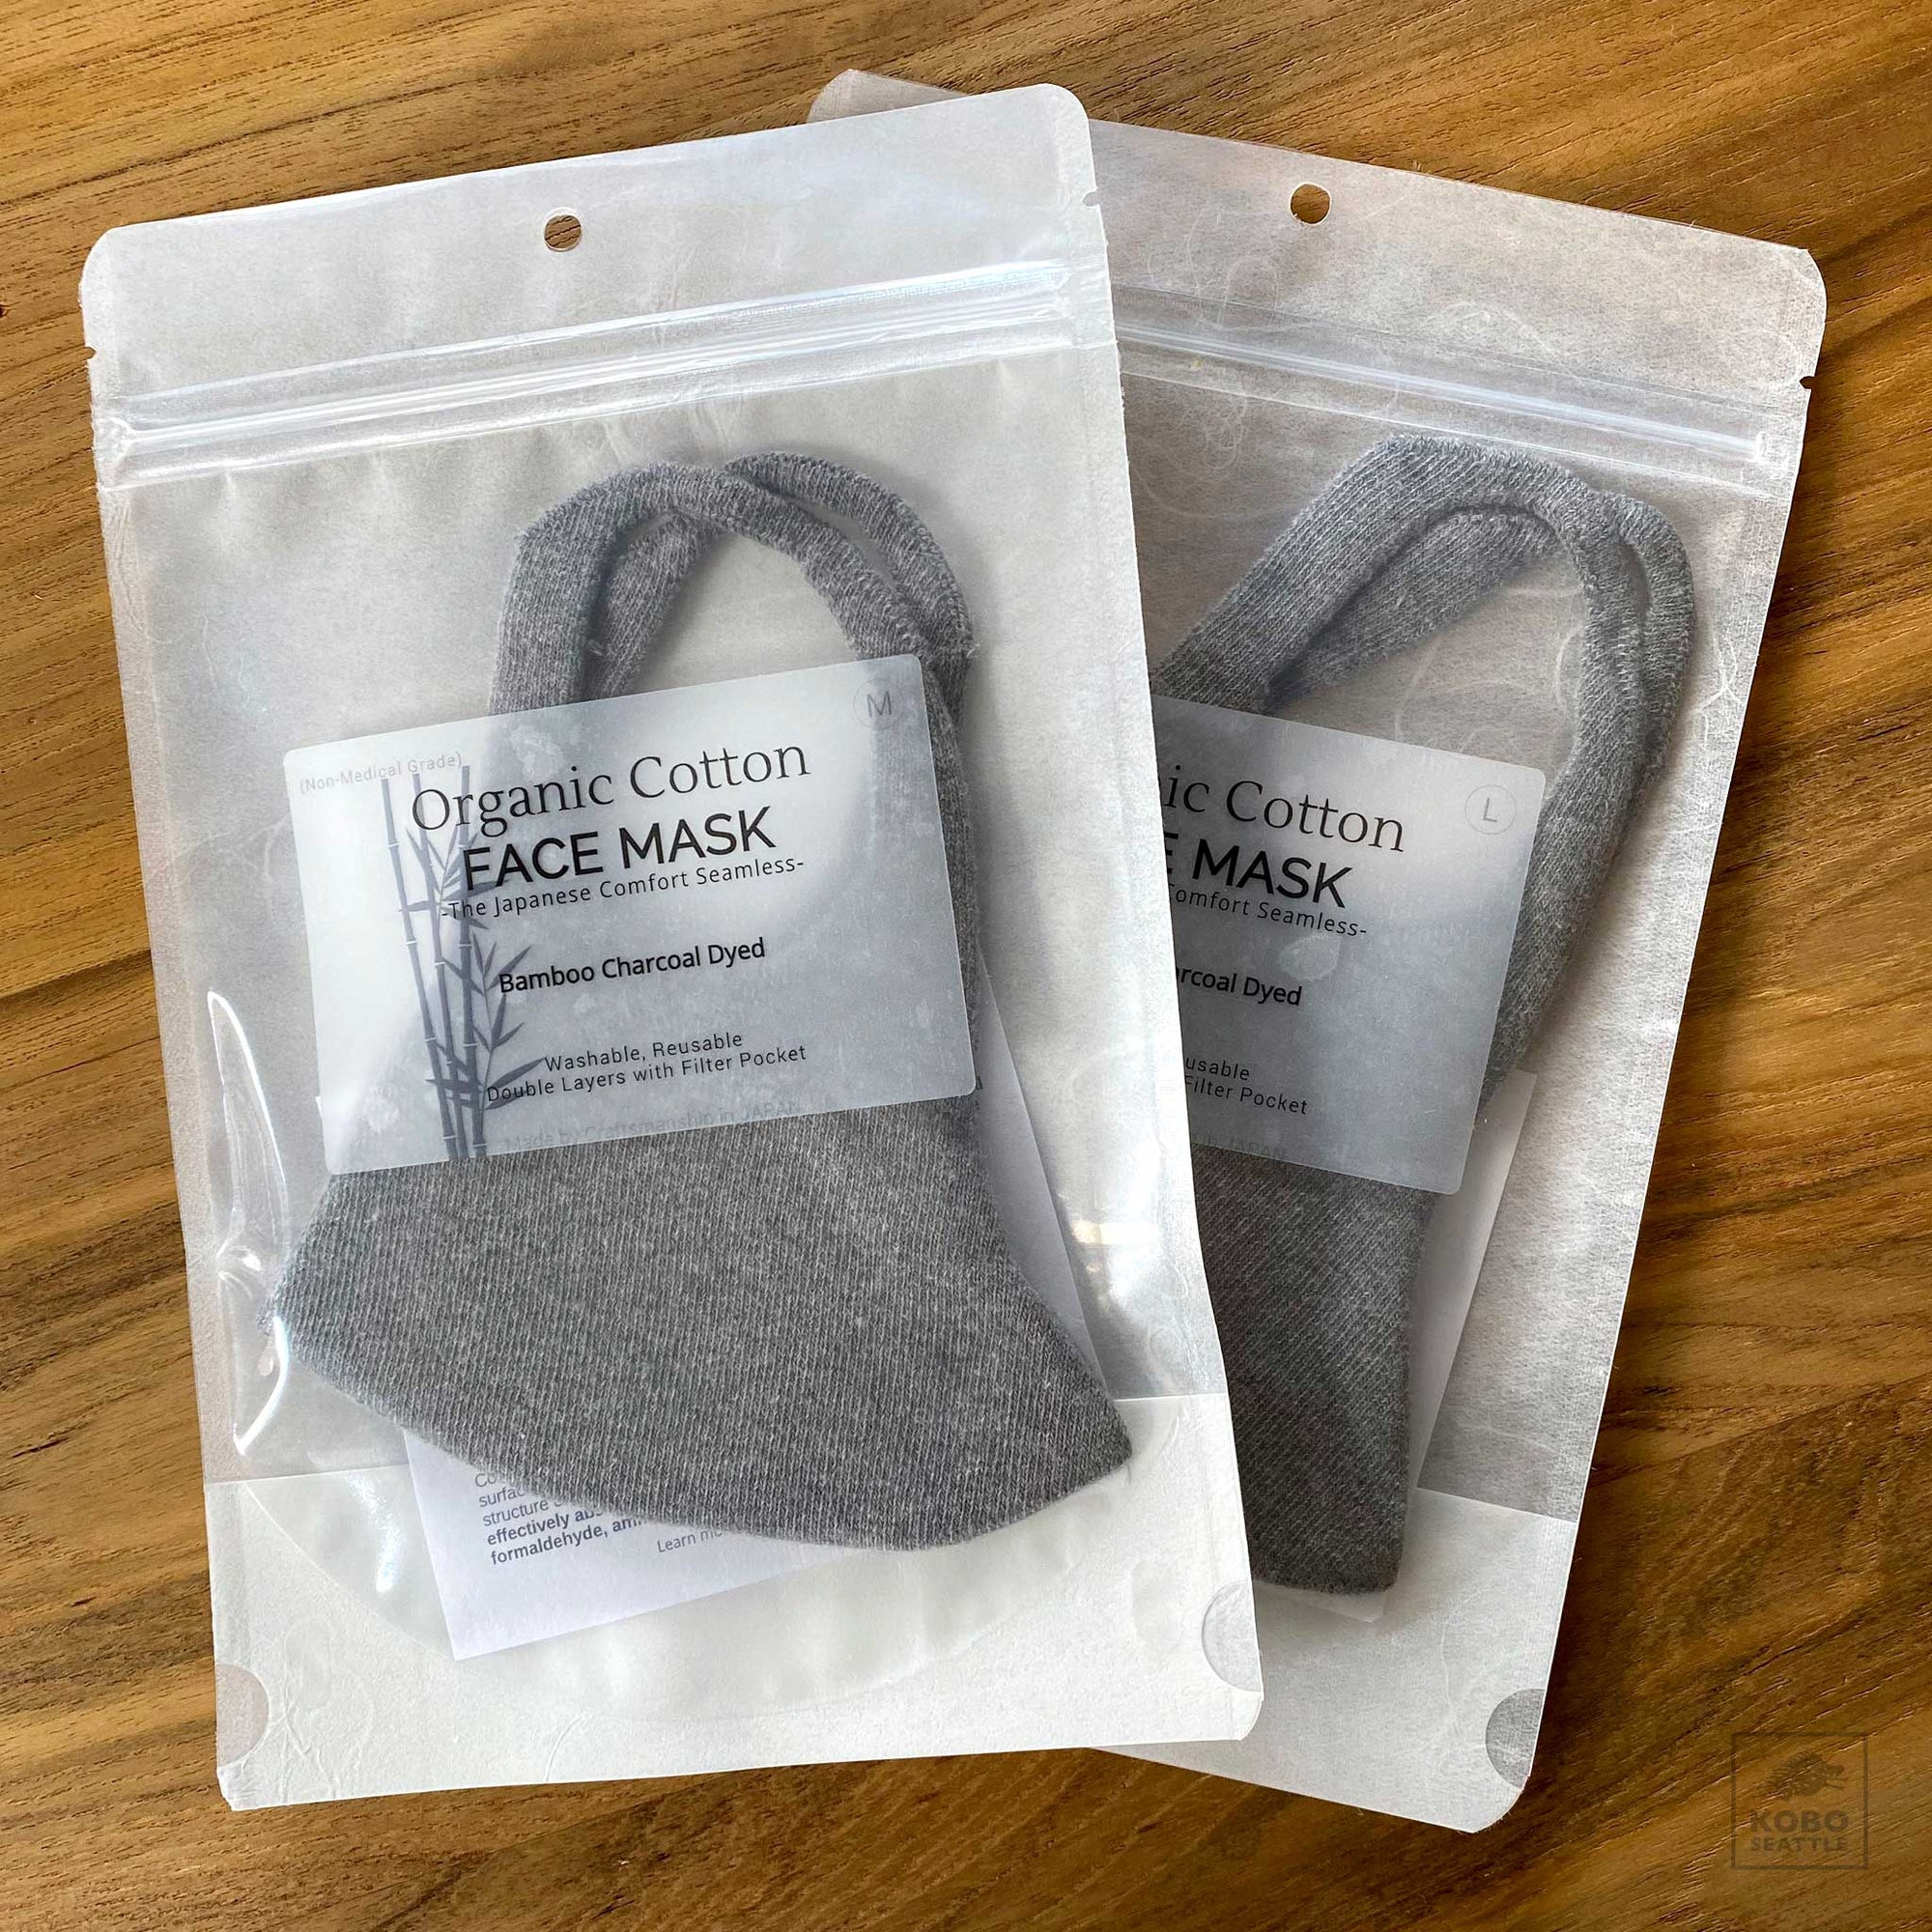 Organic Cotton Face Mask - bamboo charcoal dyed